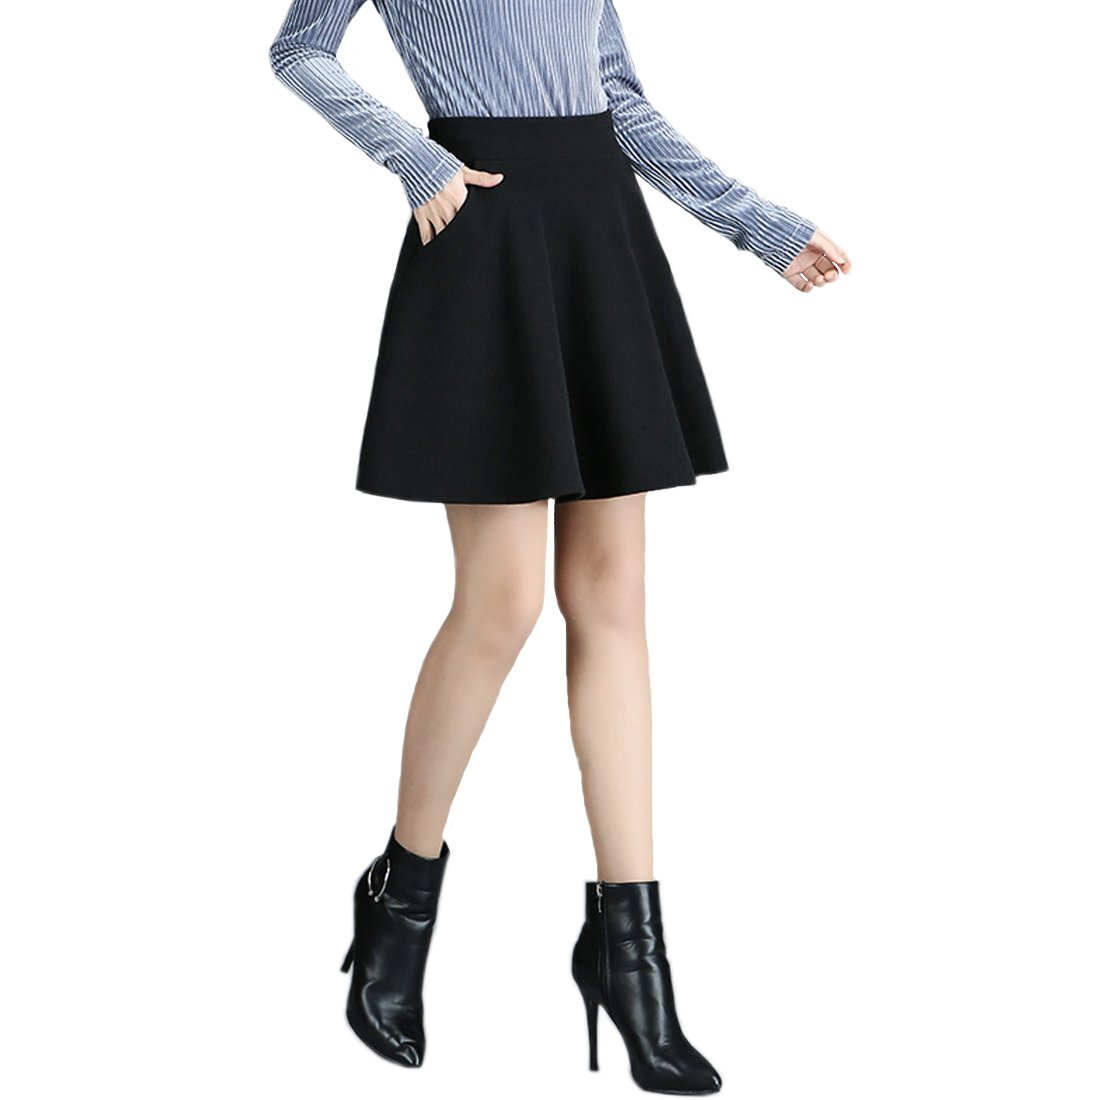 May Story Women's Basic Solid Stretchy A-Line Mini Skirt Flared Skater With Pockets